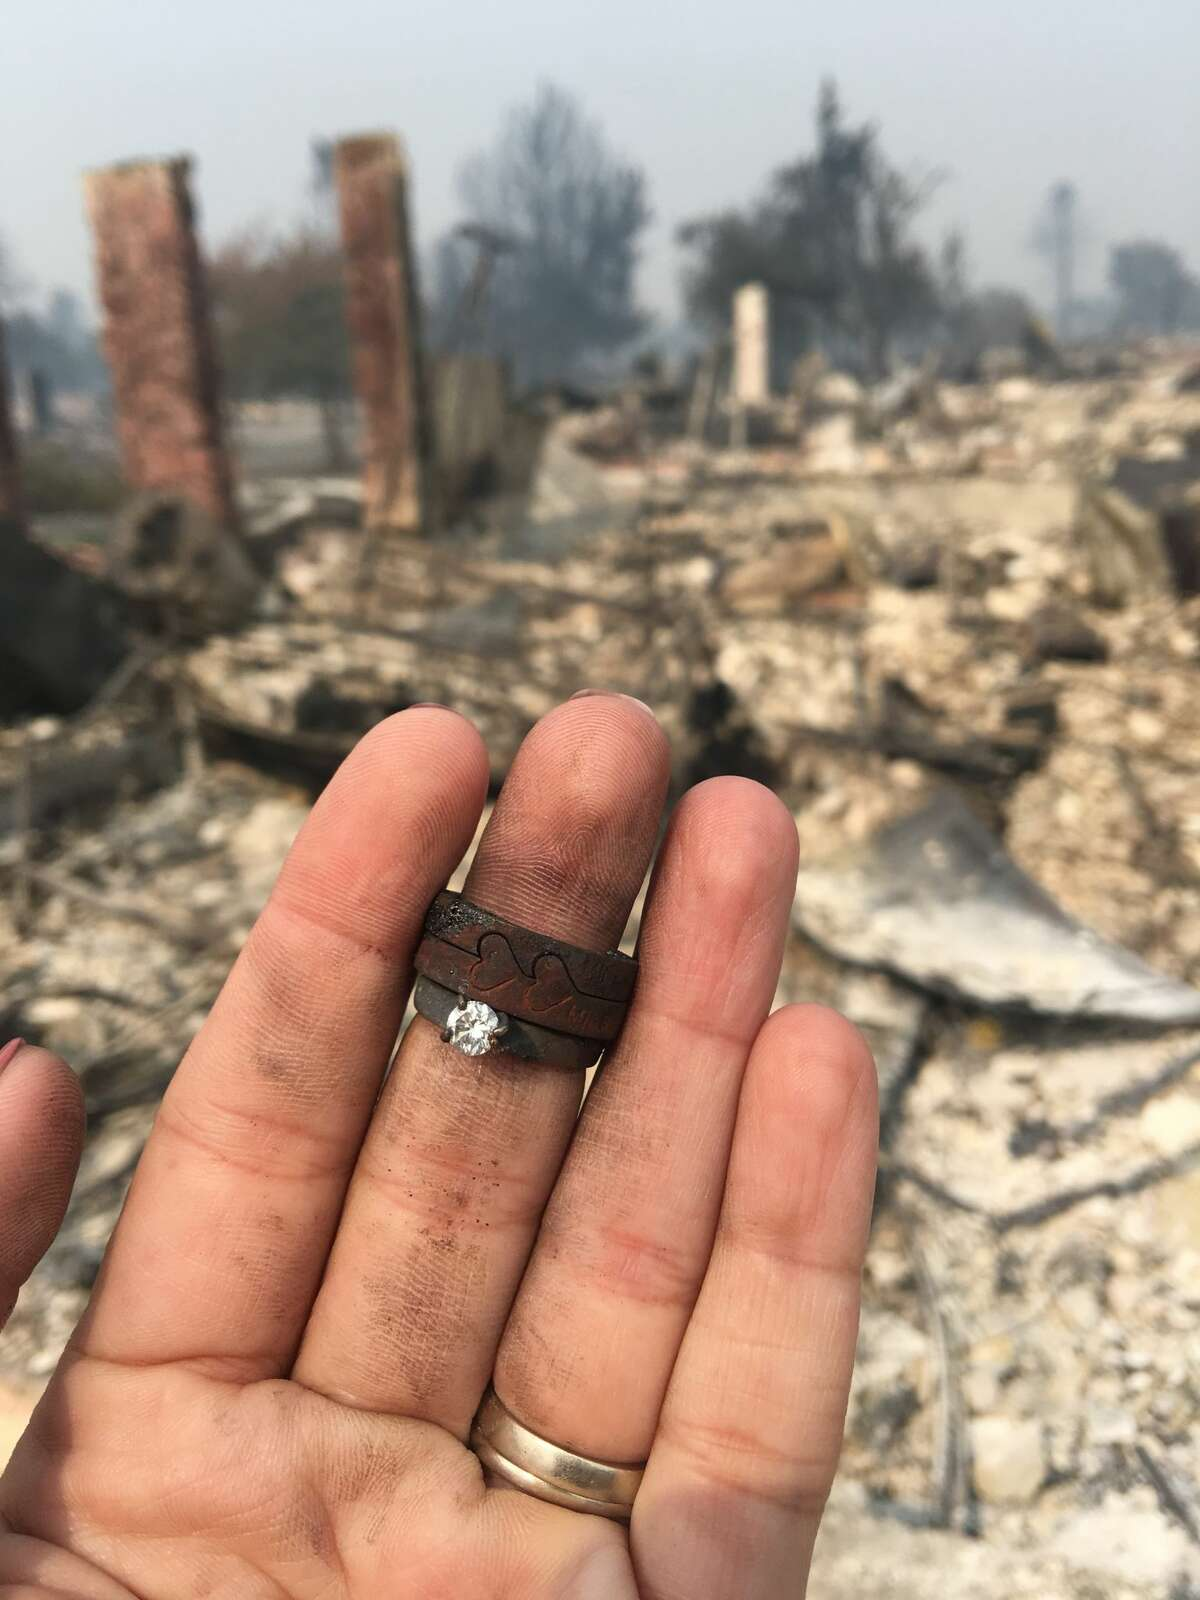 In this photo provided by Sam Brinkerhoff, his wife Monica Brinkerhoff takes a photo of her wedding ring that was found in the burned remains of her home in Santa Rosa. She had hoped to retrieve a passport from her fire-resistant safe, but that too was consumed by the flames. She wasn't prepared for what she did find, the couple's soot-covered engagement rings, with a pair of etched hearts still visible on one of the bands.